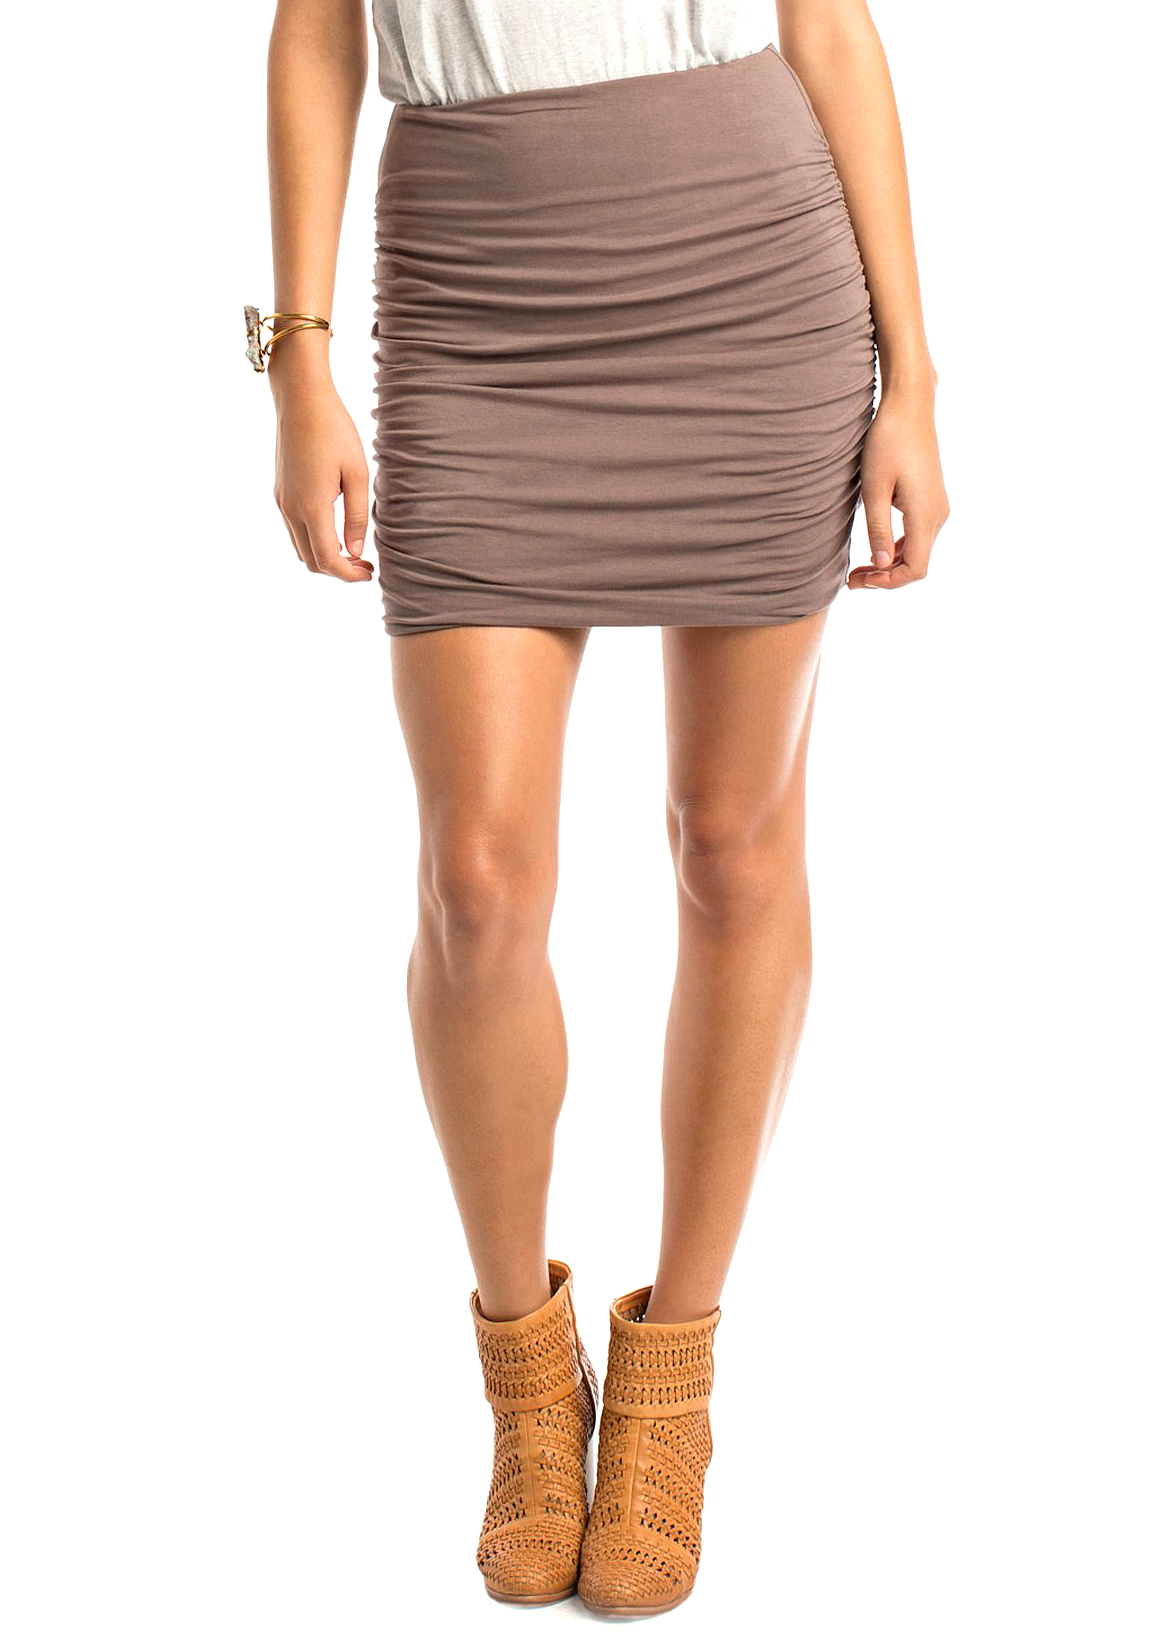 ad76c49002 Best Travel Skirts by Length: Mini, Midi, and Maxi